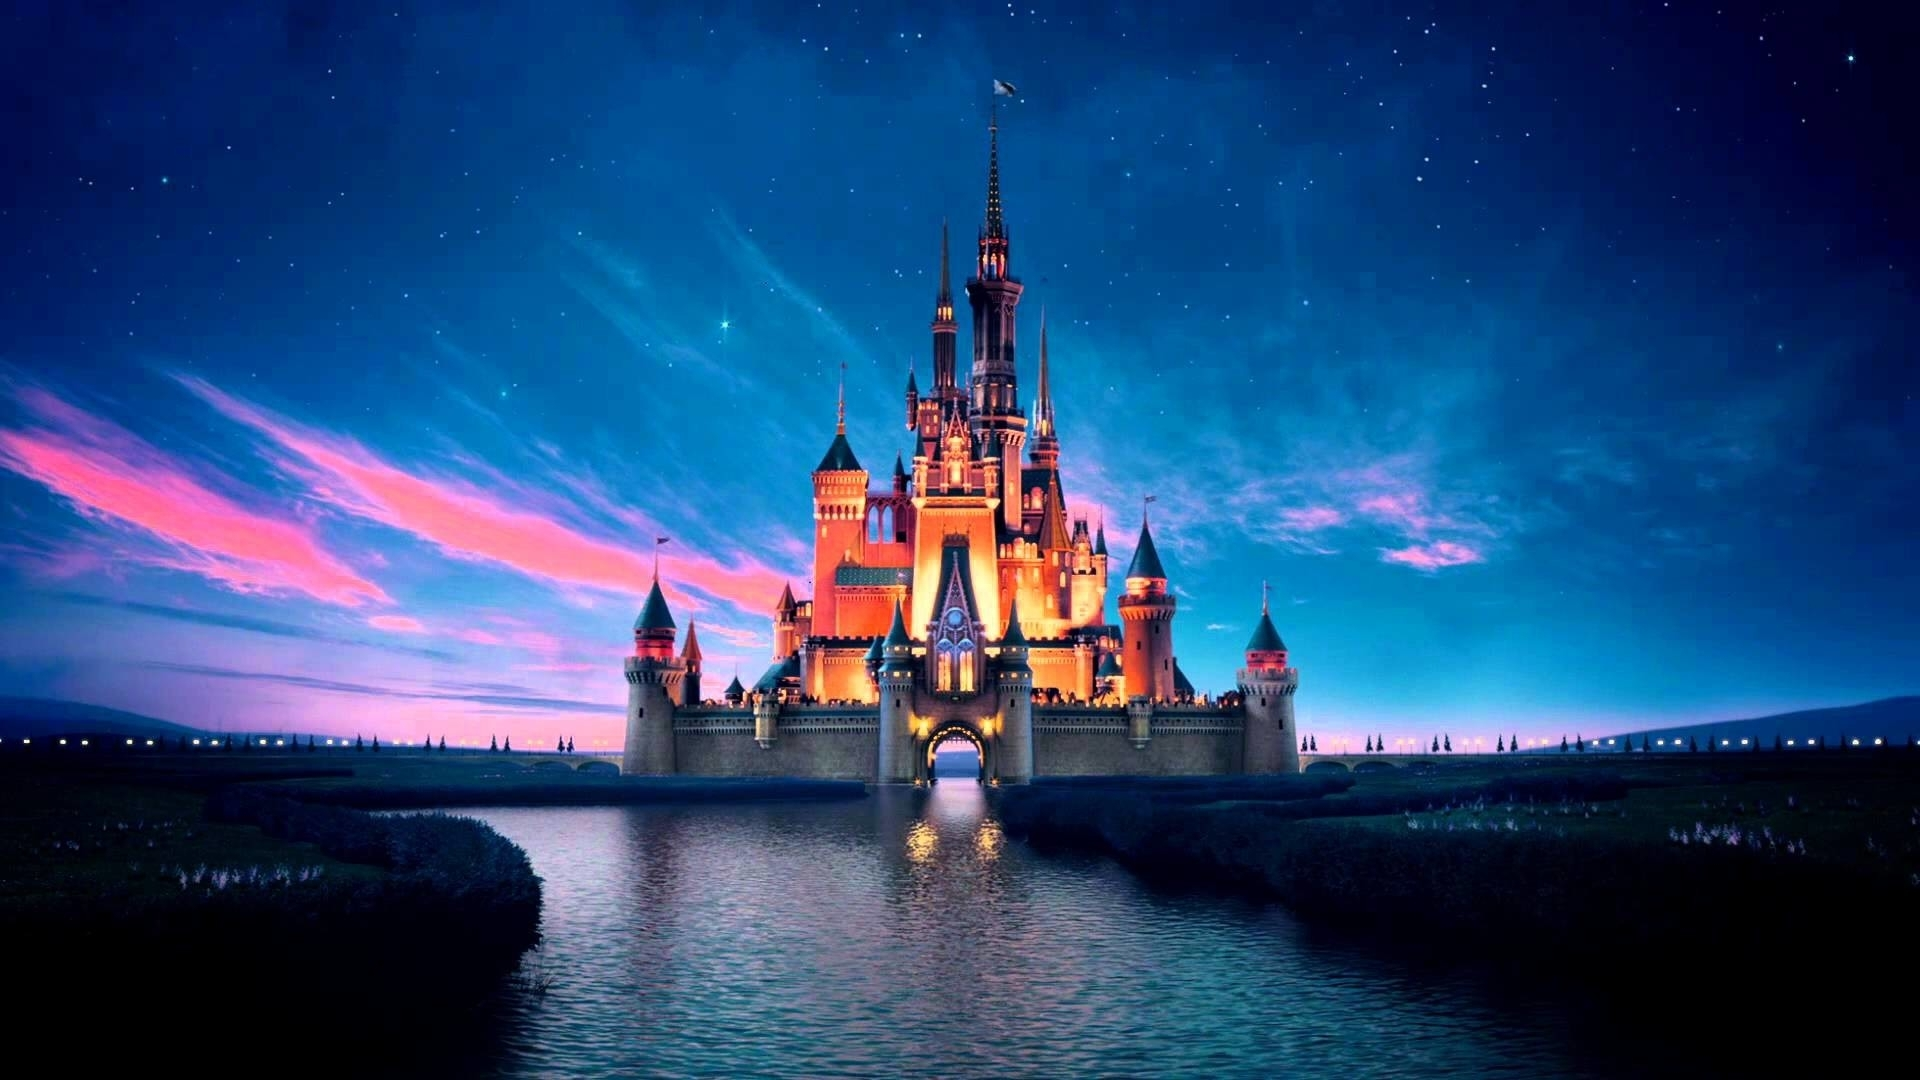 disney castle wallpaper hd (72+ images)